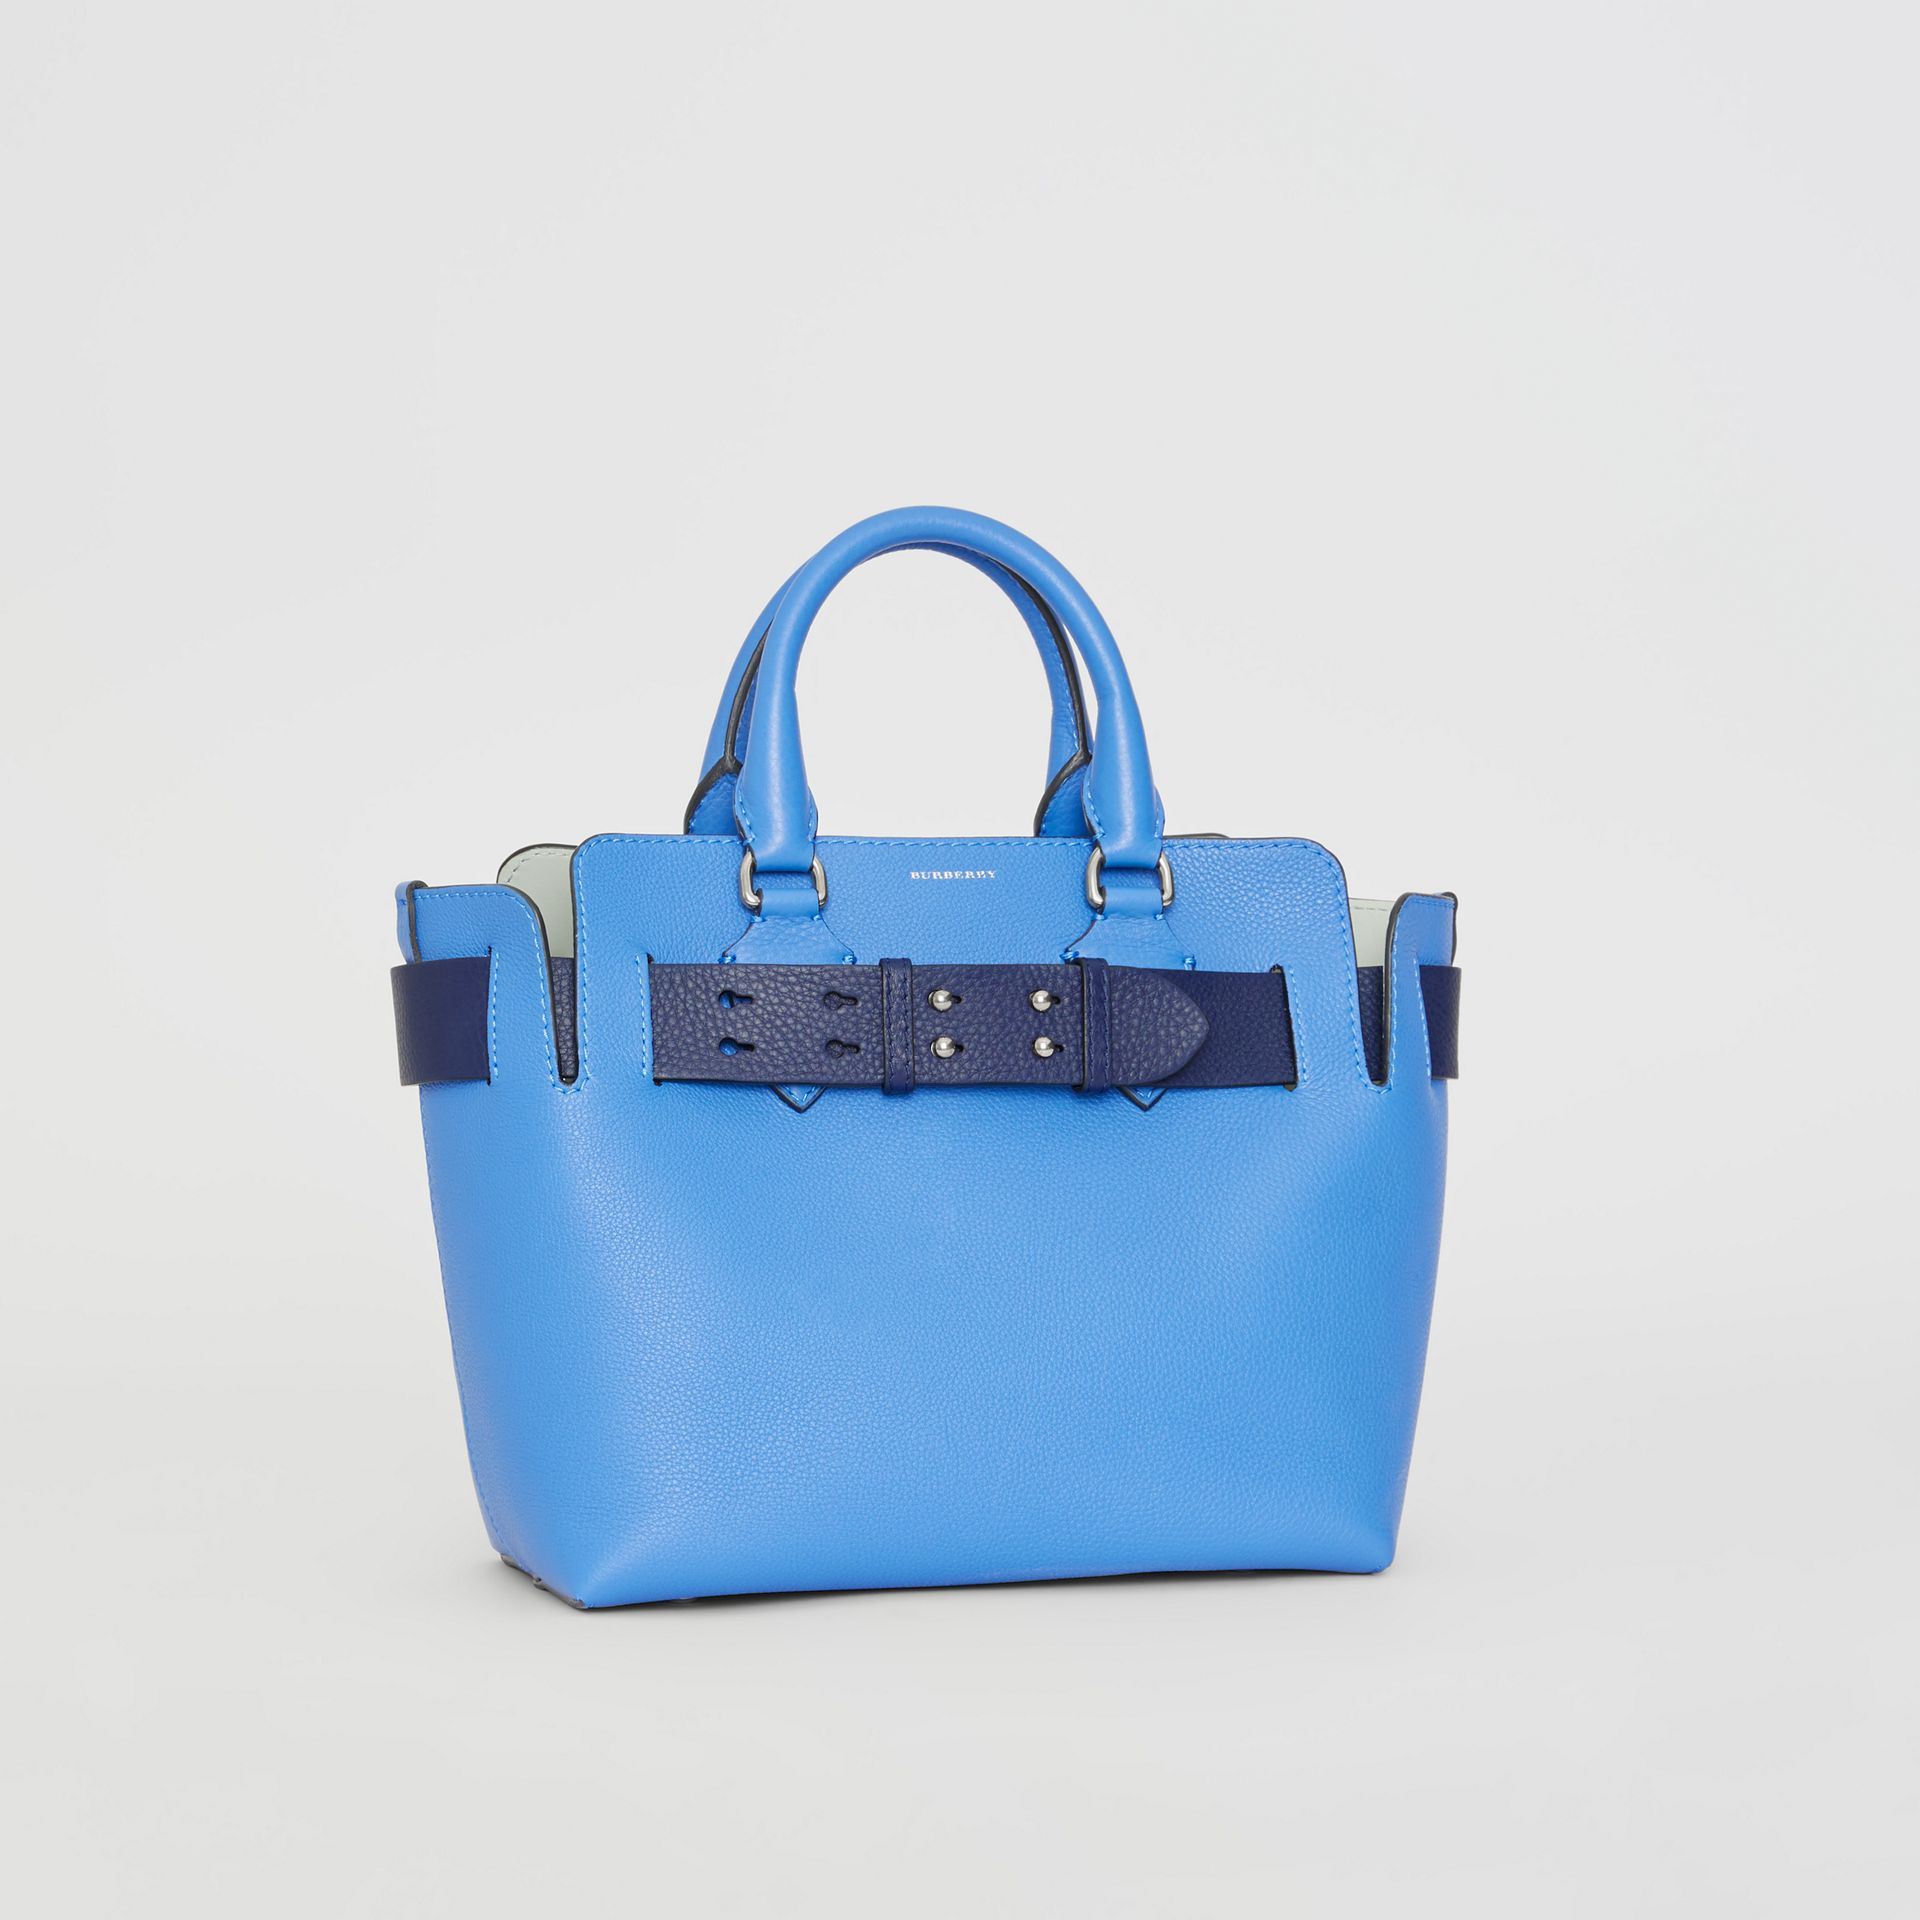 Borsa The Belt piccola in pelle (Blu Ortensia) - Donna | Burberry - immagine della galleria 5